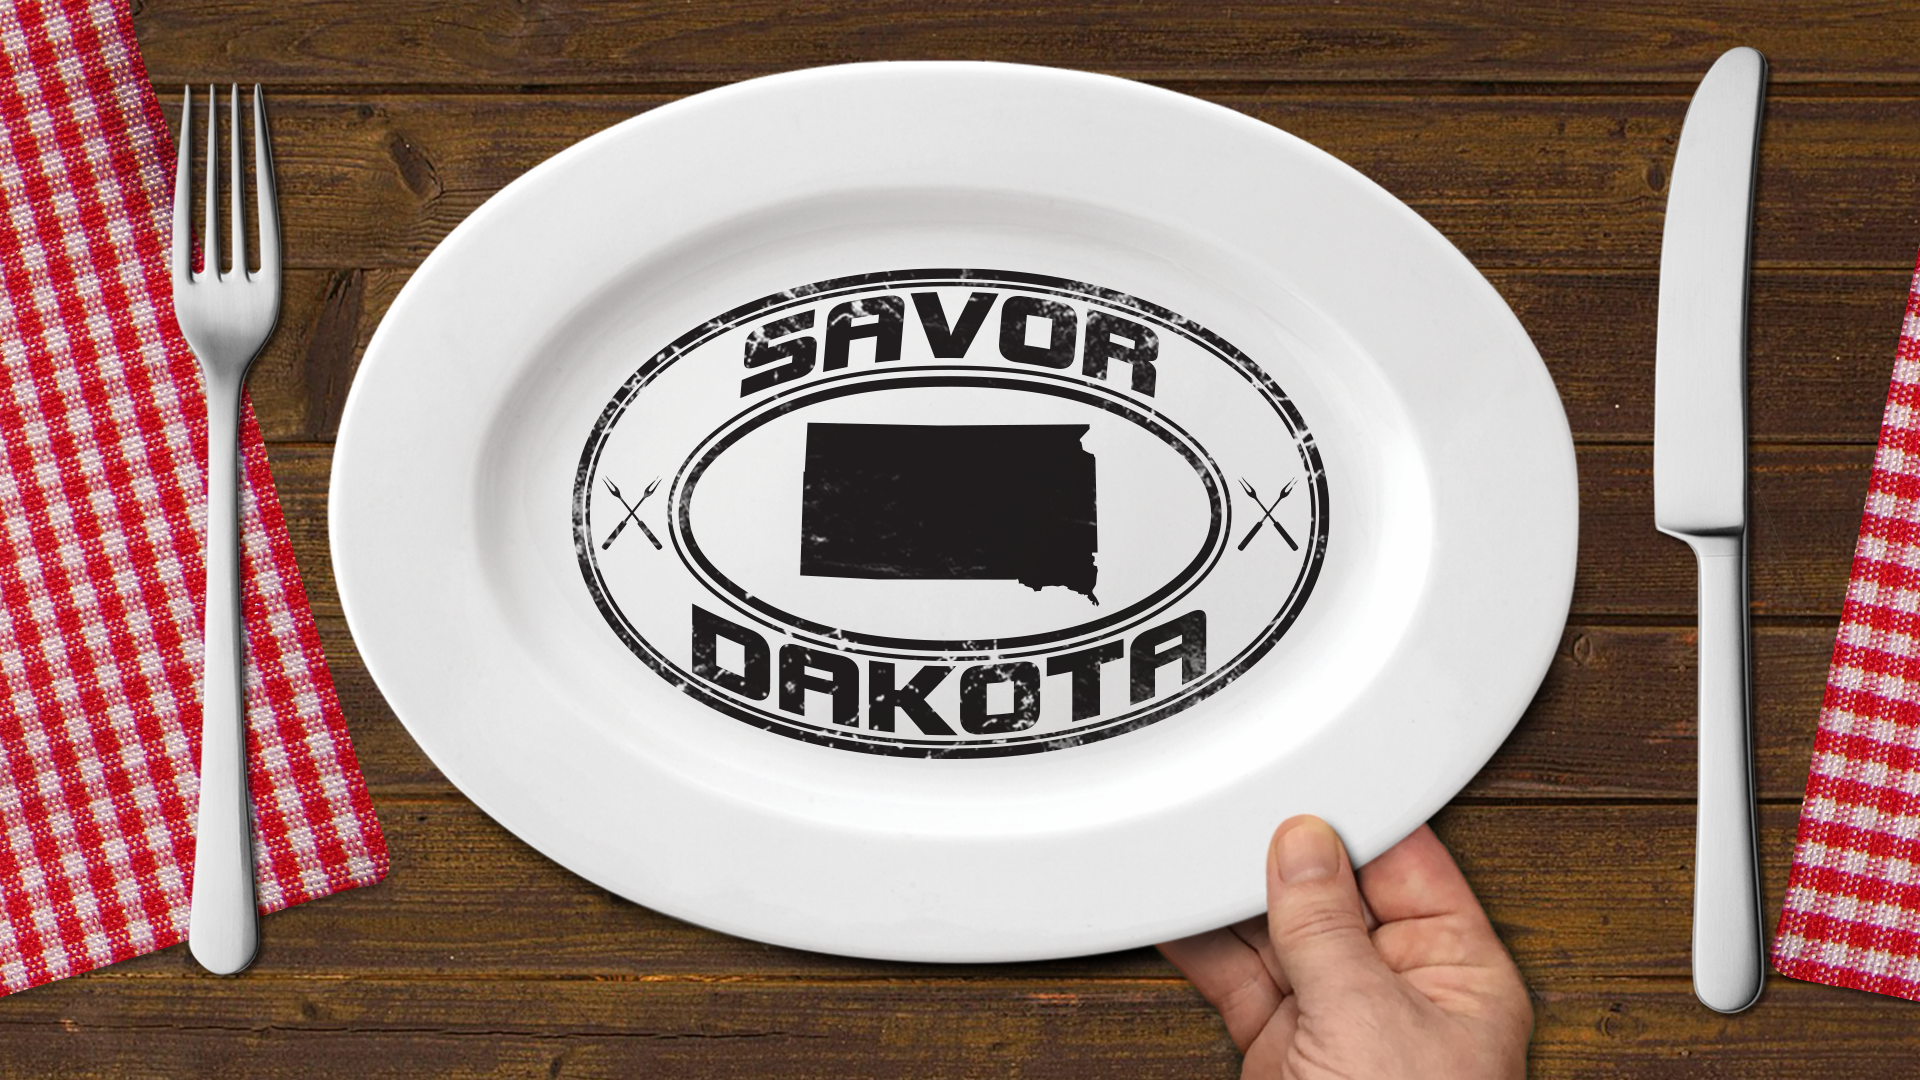 Savor Dakota